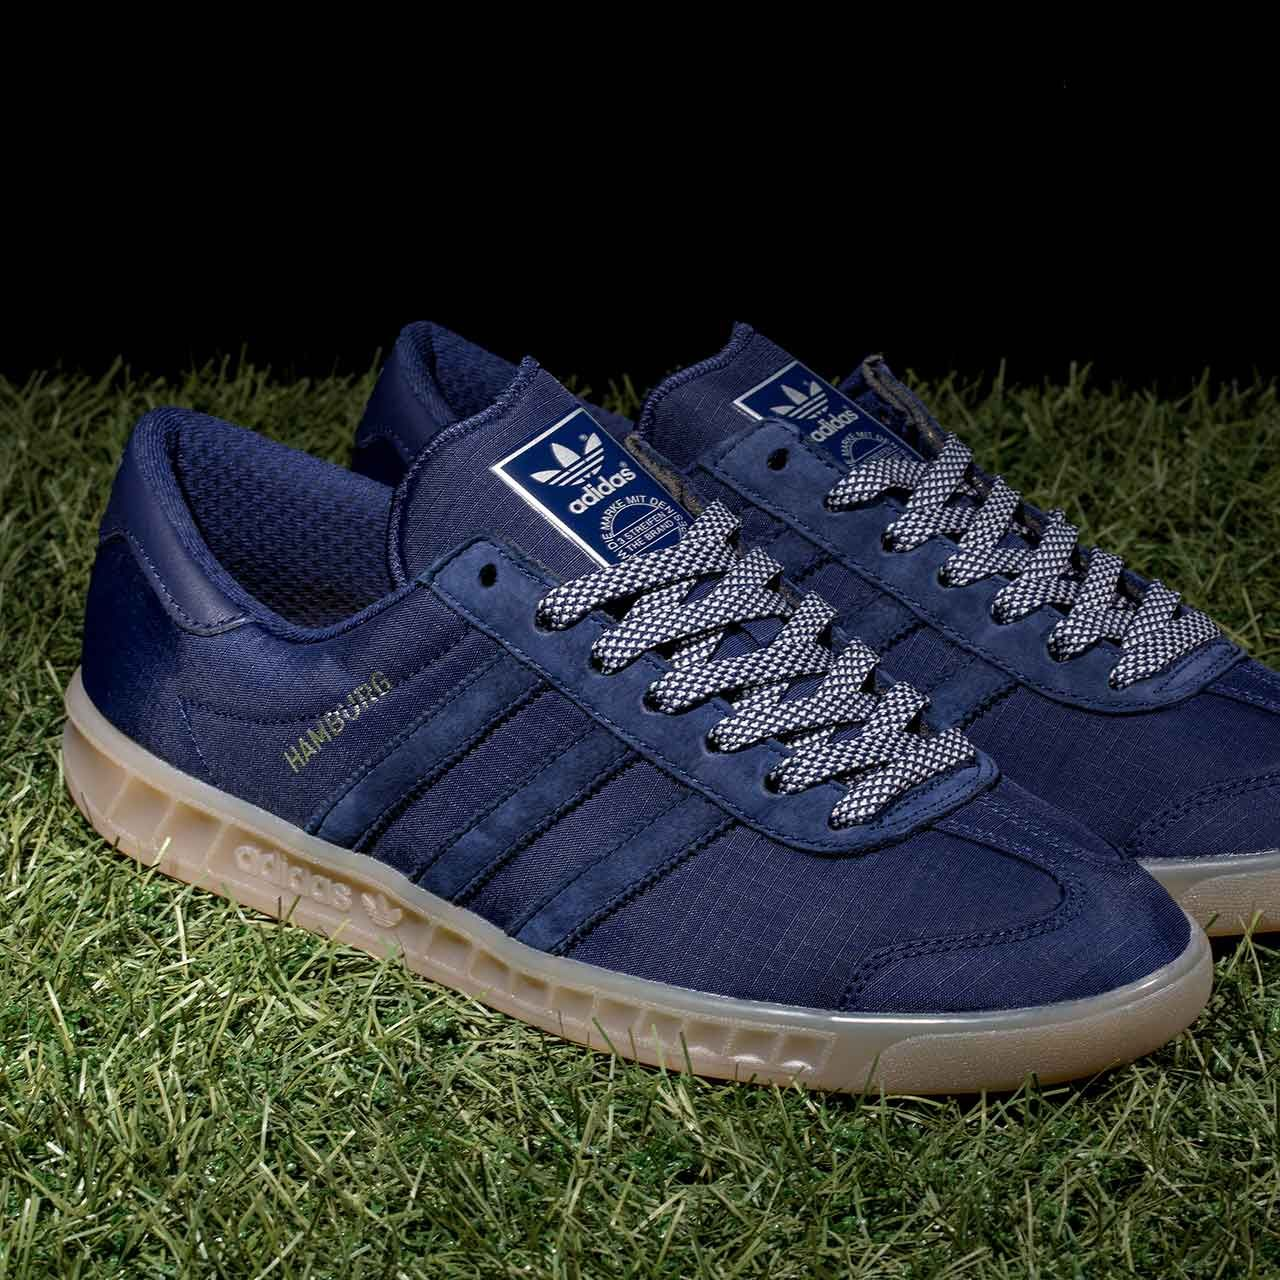 New In - The adidas Originals Hamburg Tech Trainer in Dark Blue & Gum. More